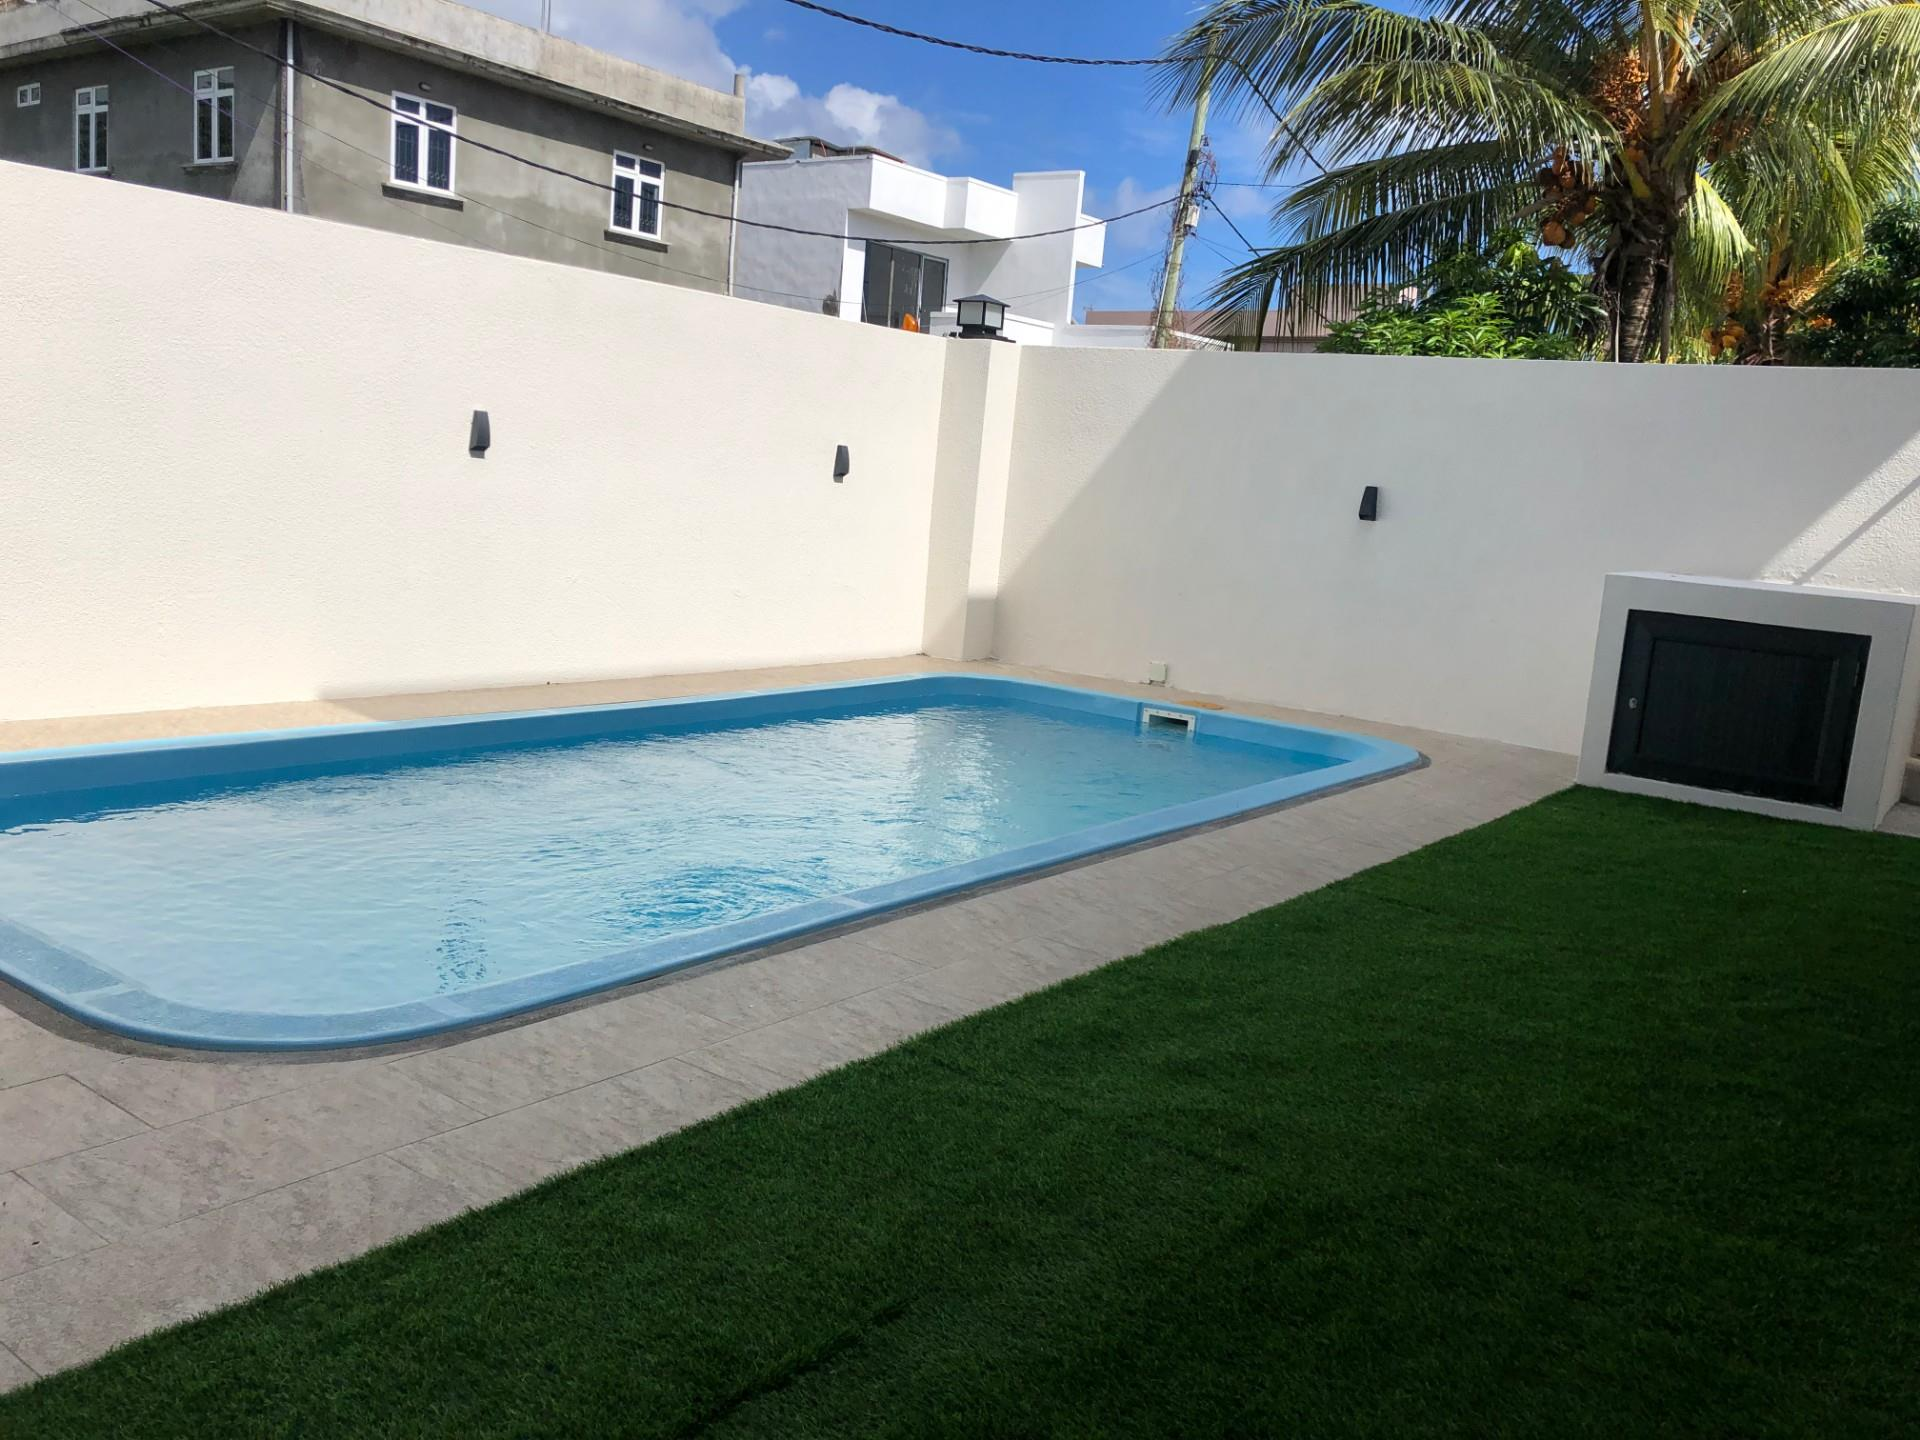 4 Bedroom House For Sale in Trou Aux Biches